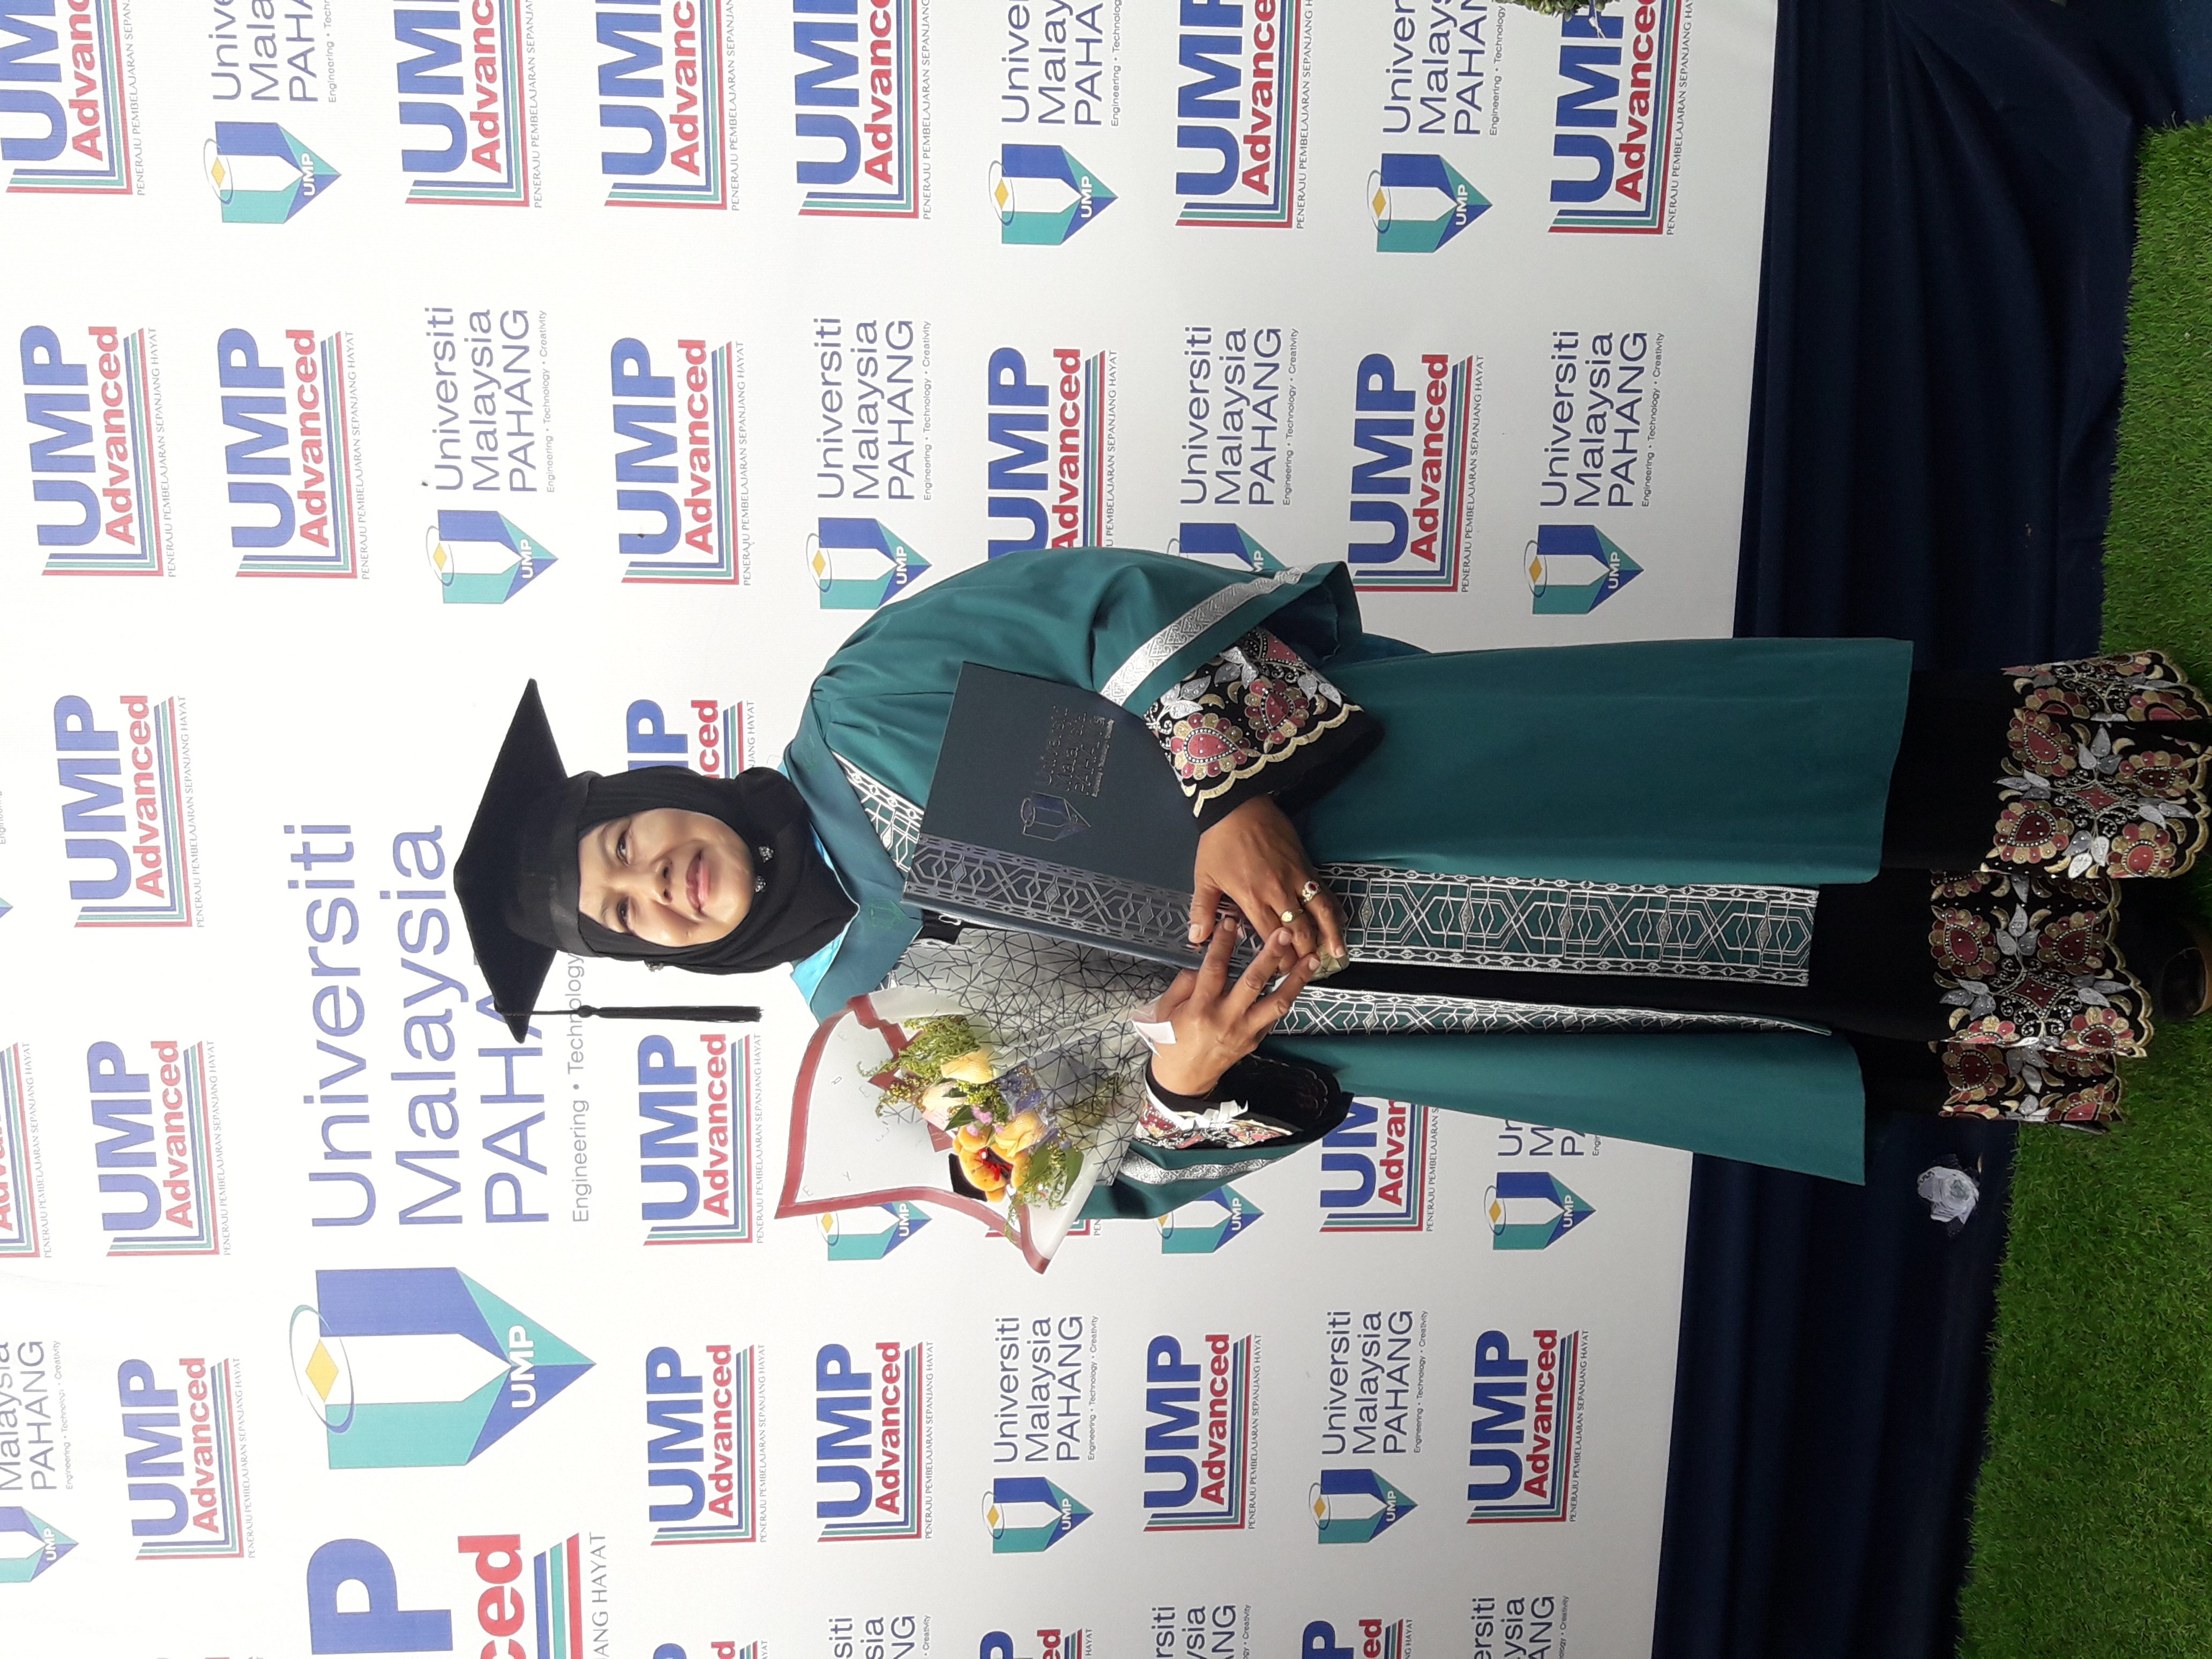 Noorlizah donned in her graduation attire, holding a bouquet of flowers and a degree